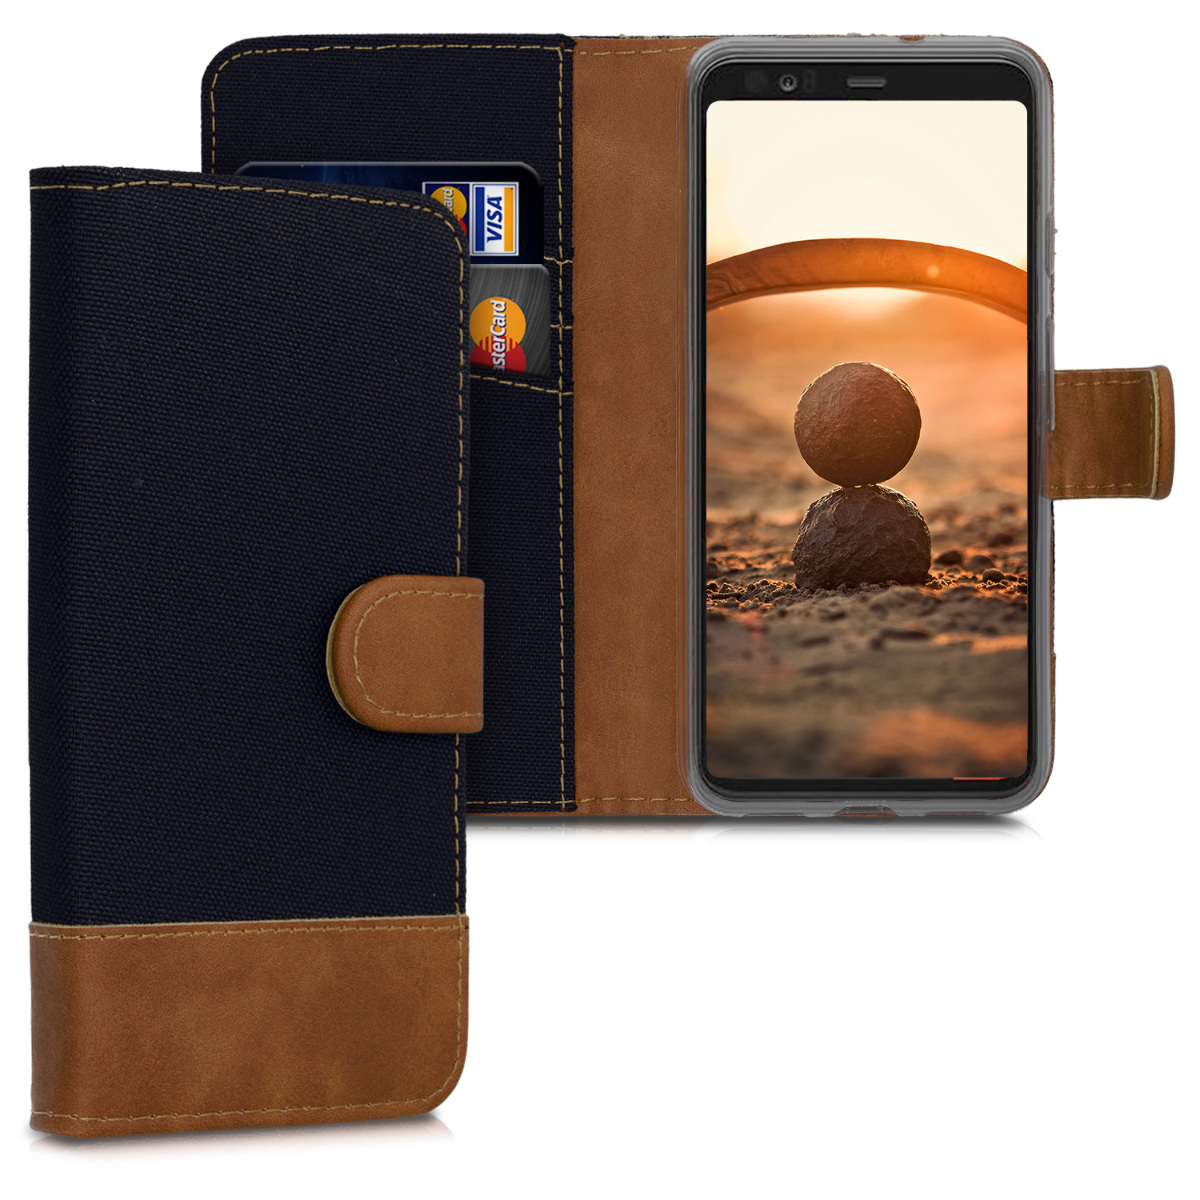 KW Θήκη - Πορτοφόλι Google Pixel 4 - Fabric and PU Leather Flip Cover - Black / Brown (50375.01)